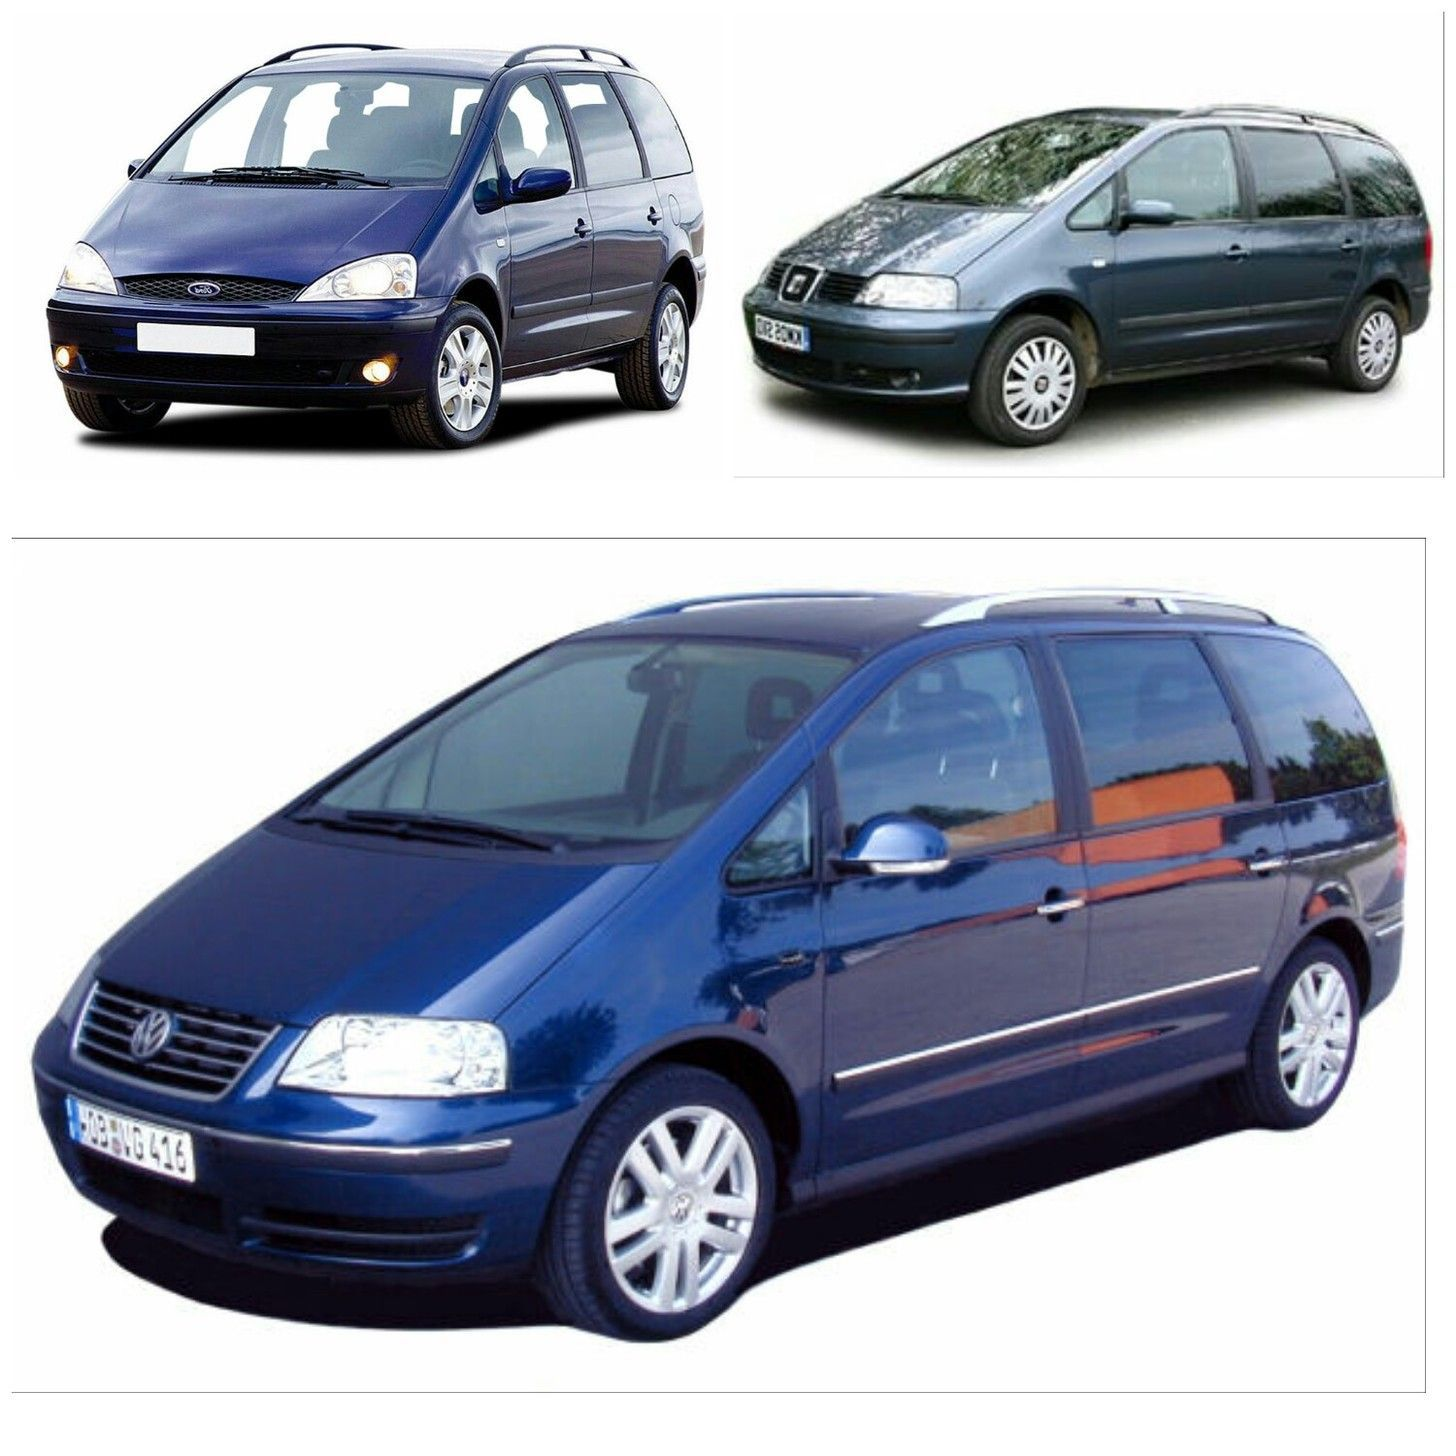 Ford Galaxy Top Left Seat Alhambra Top Right Volkswagen